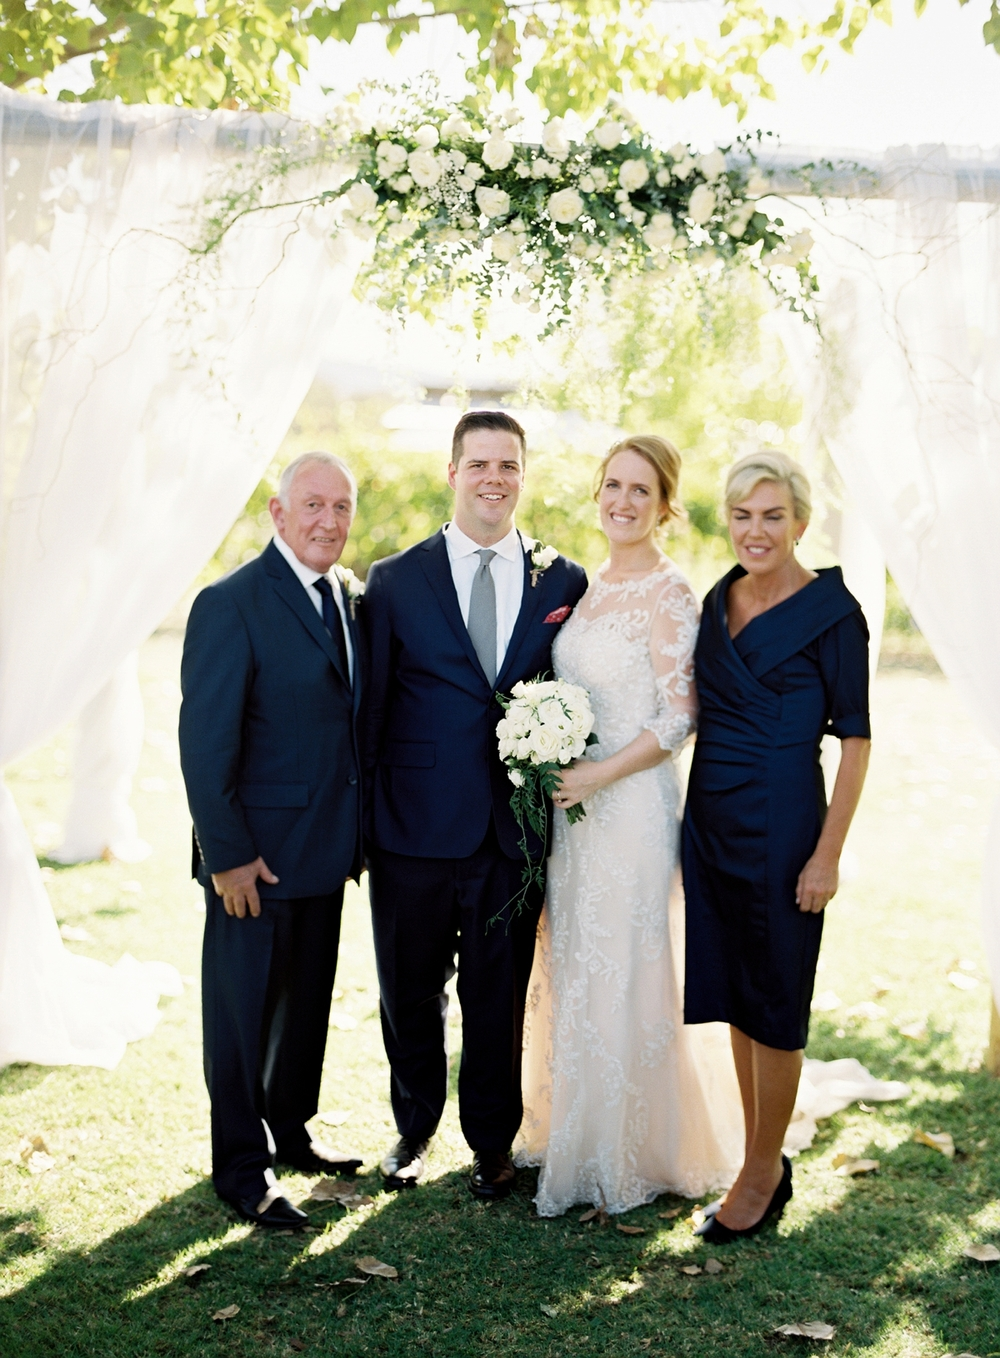 The Vine Grove Mudgee Wedding, Photography by Mr Edwards_1772.jpg